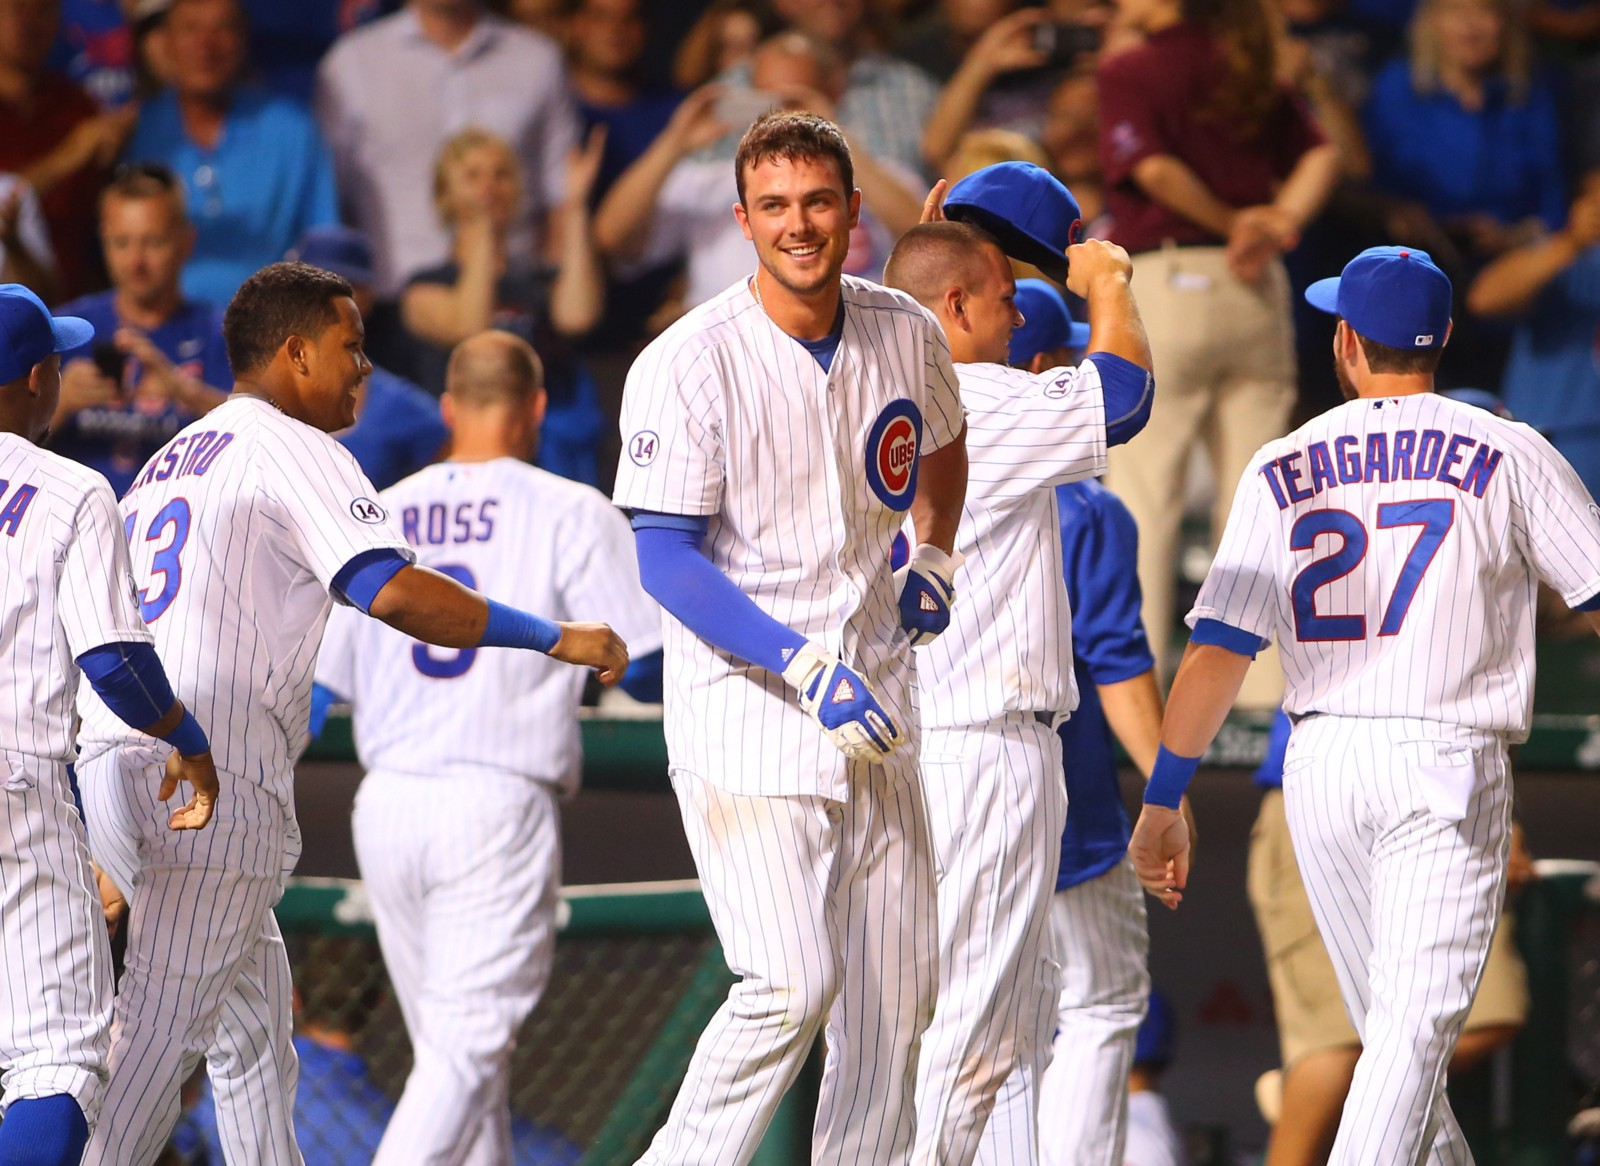 e7cbd3528cf88a Five reasons why 2015 was the funnest and most exciting Chicago Cubs  regular season of this era